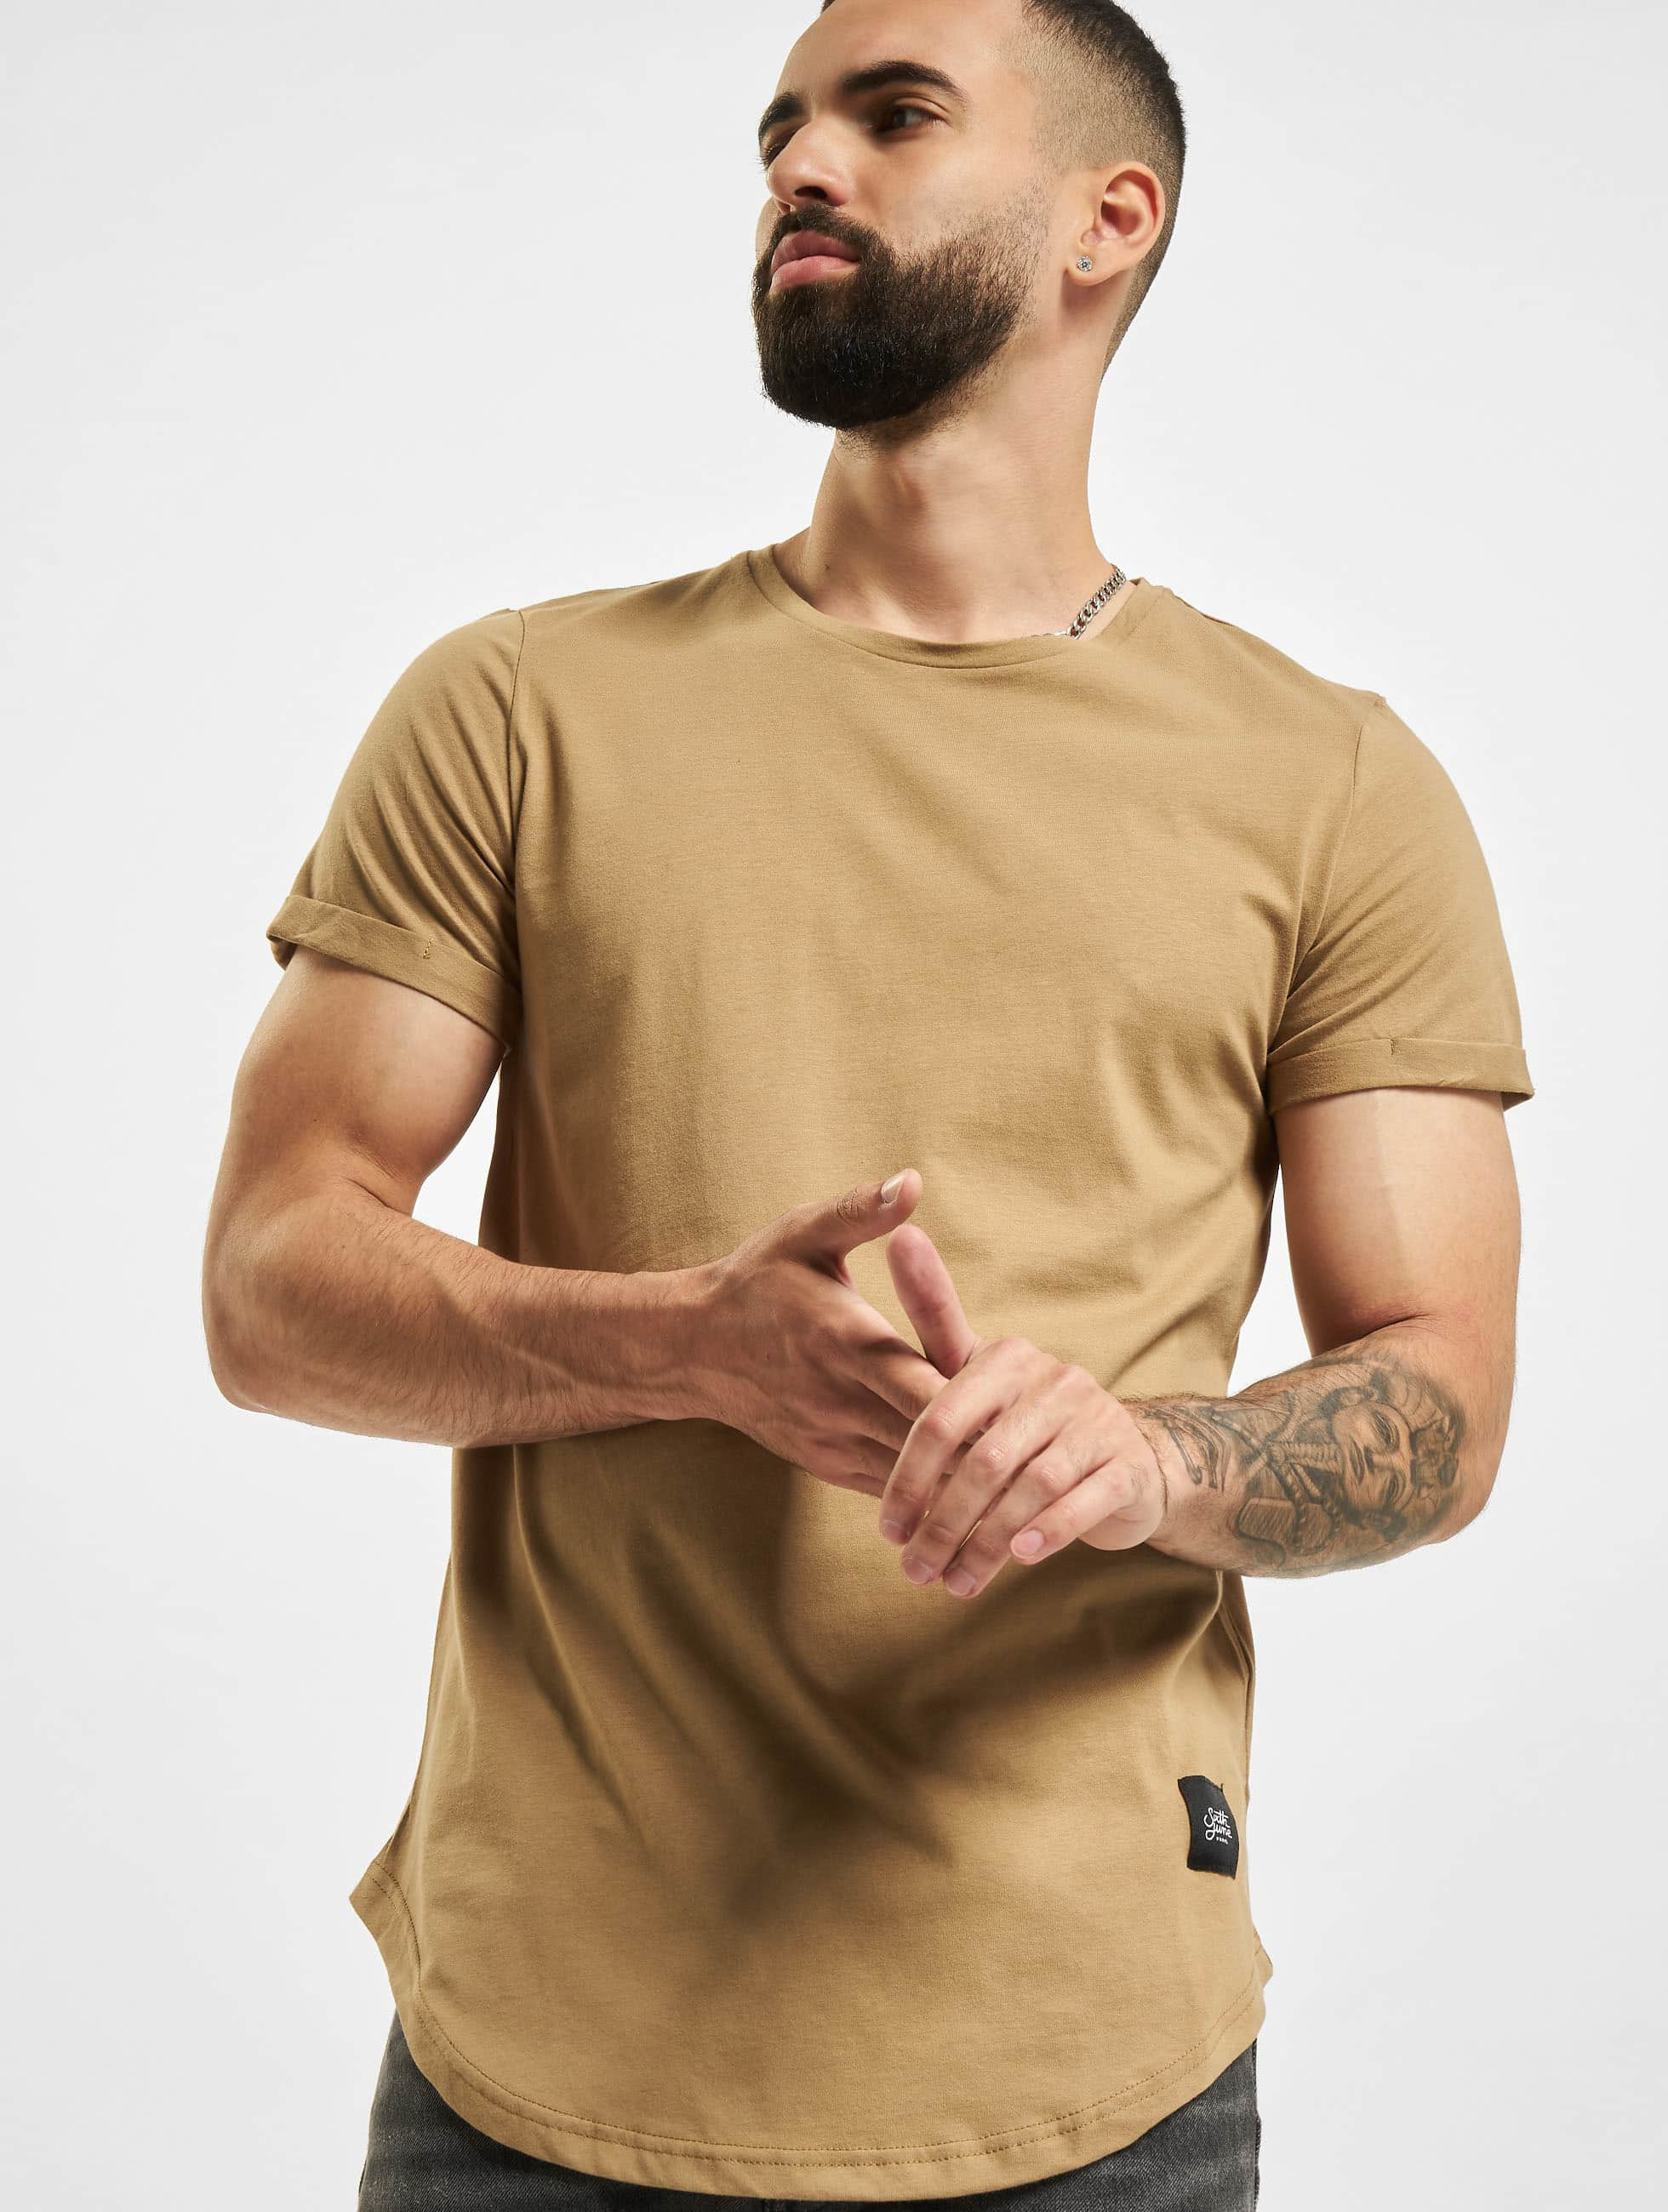 Tall Tees Rounded Bottom in beige